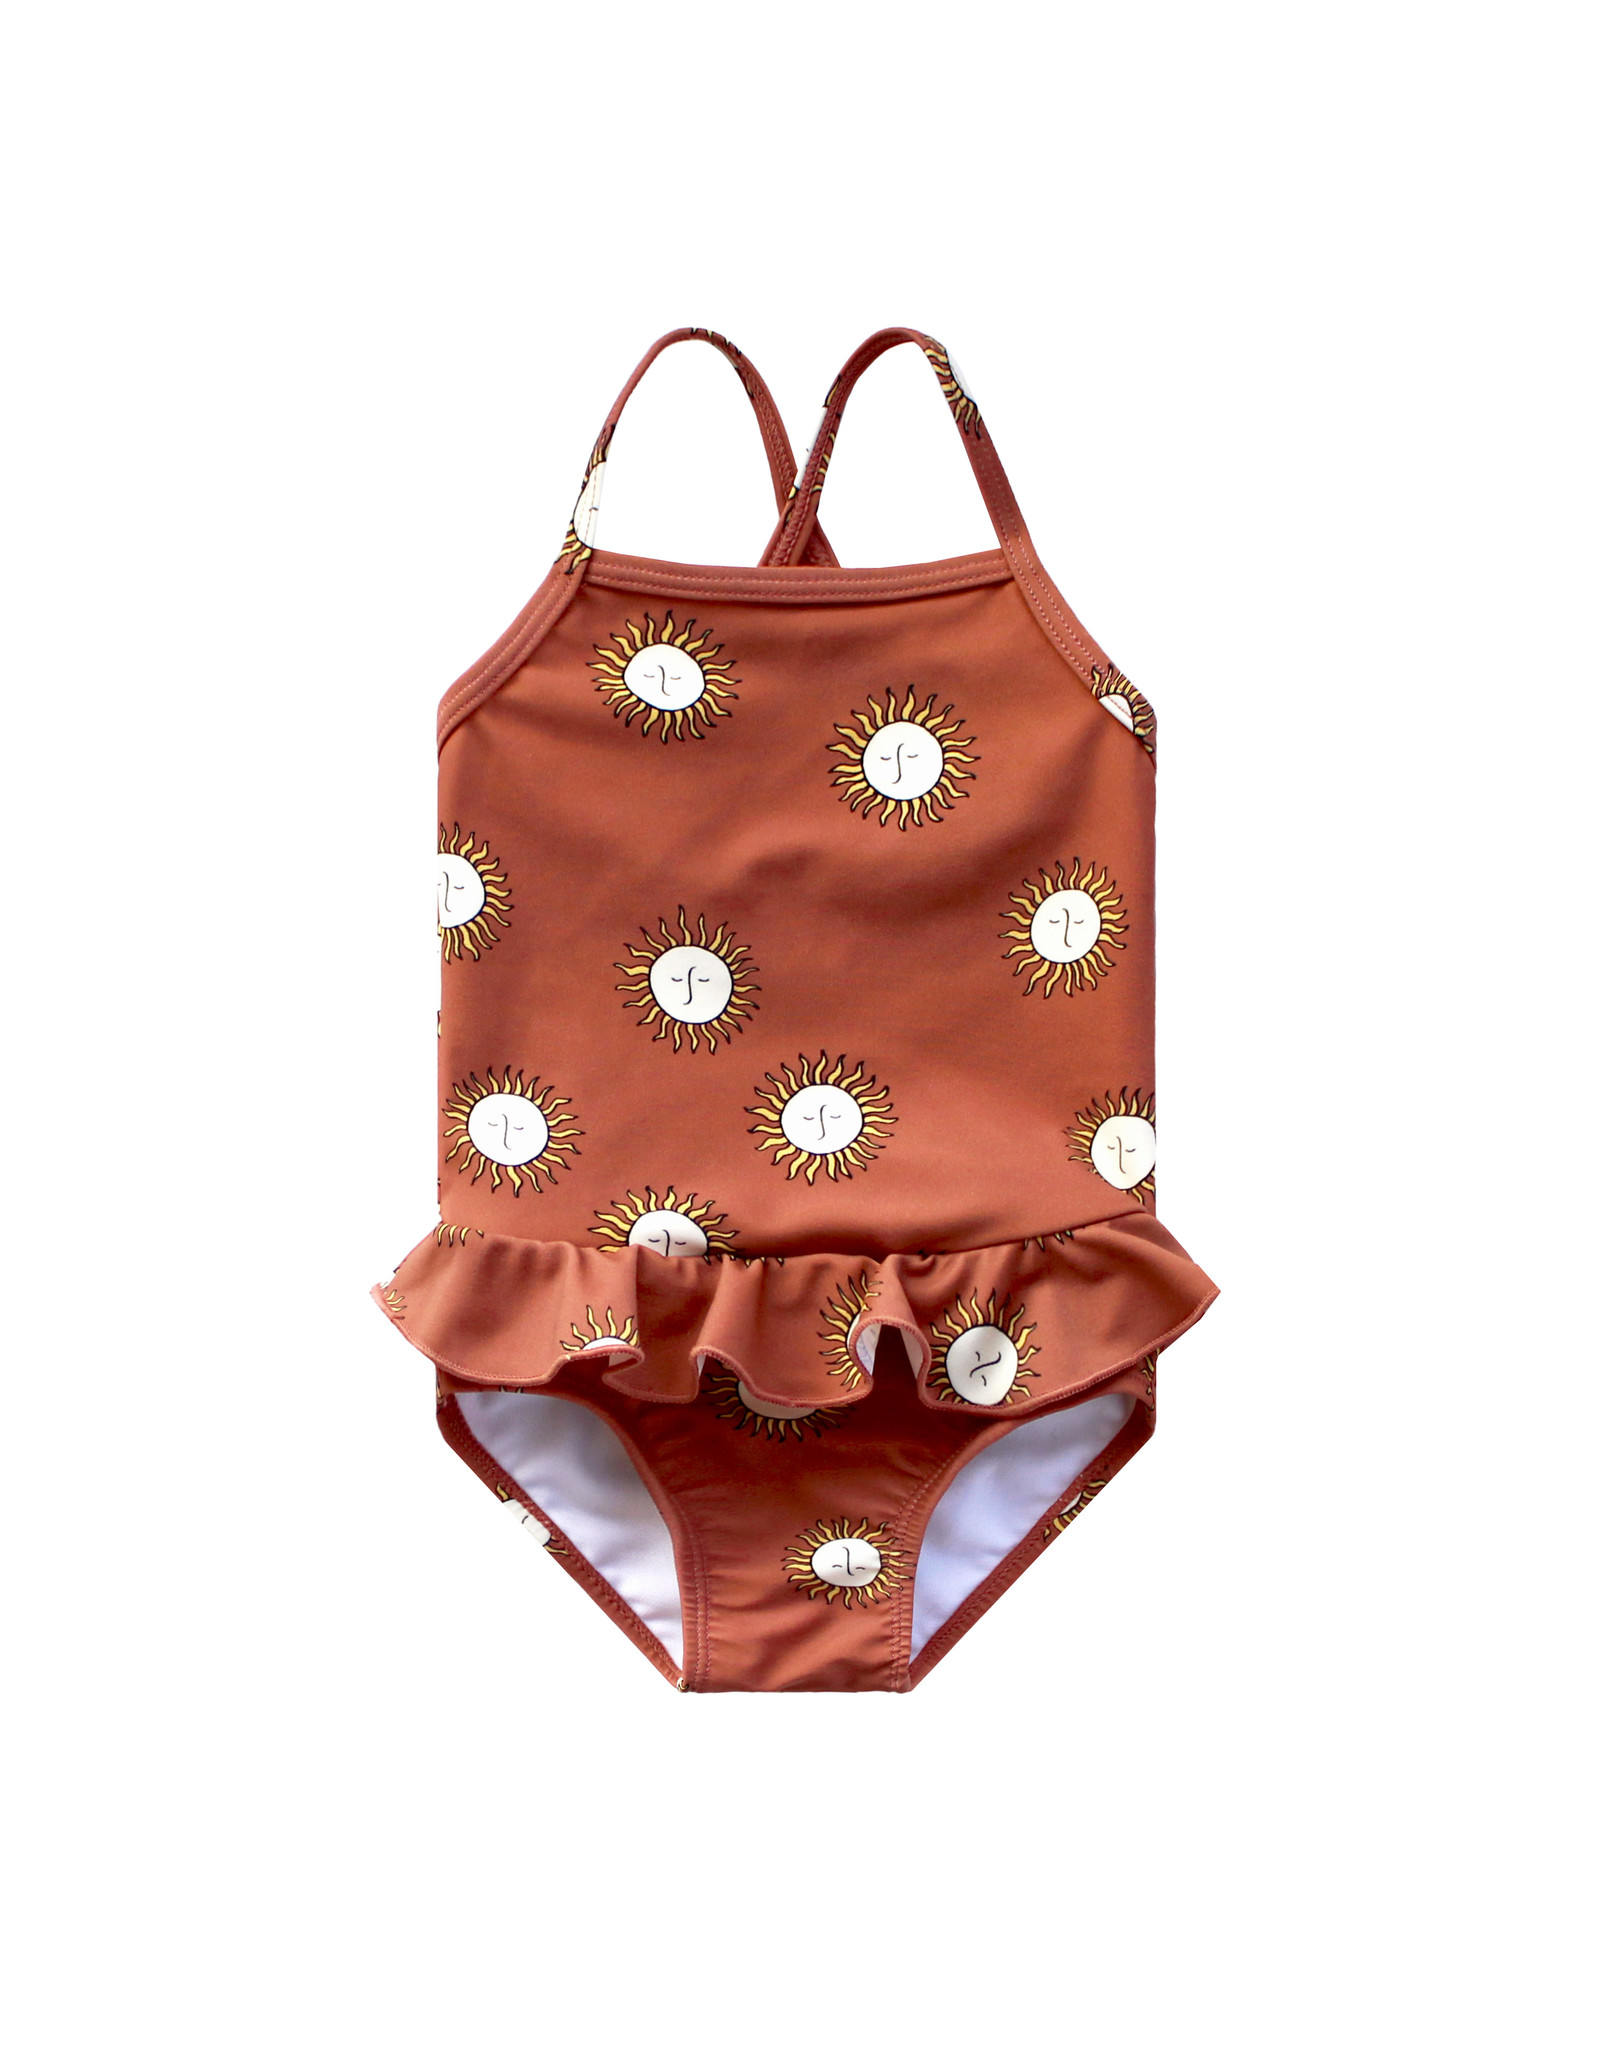 Your Wishes Sunny | Swimsuit